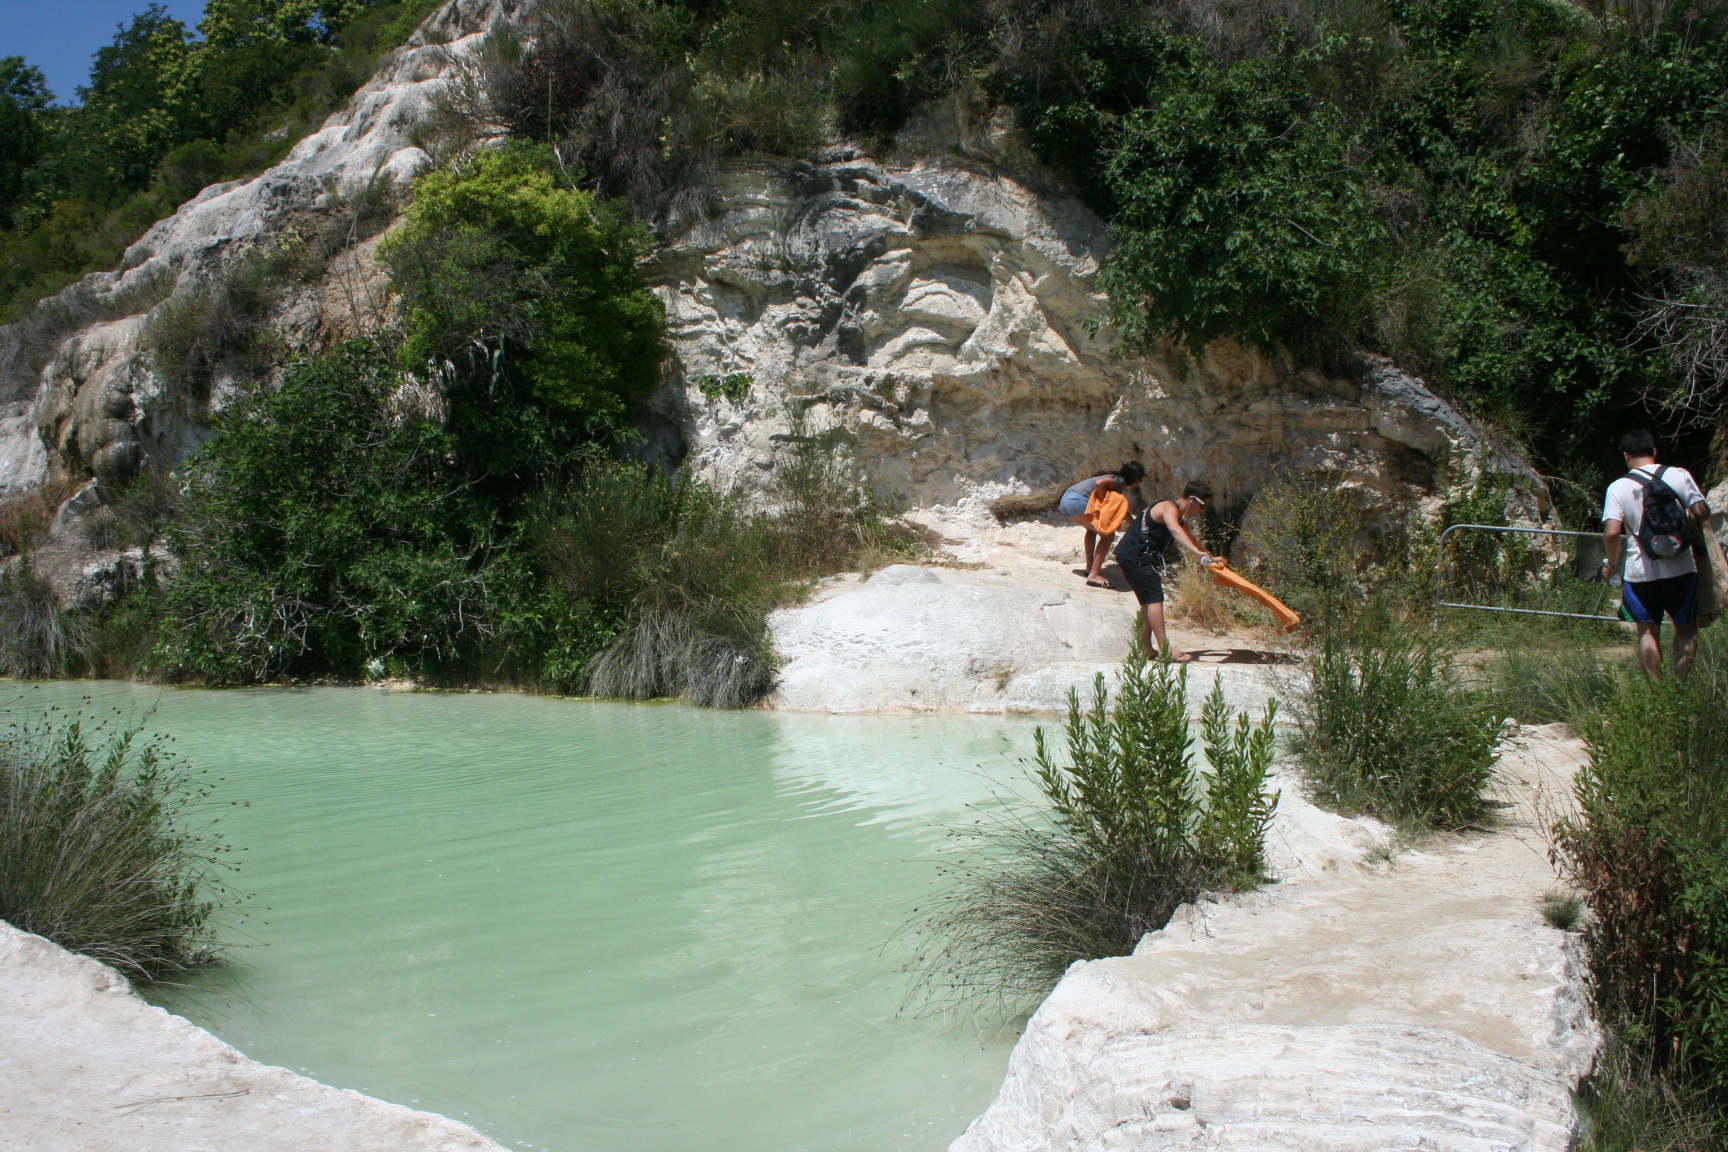 Bagno Vignoni Free Thermal Baths Bagno Vignoni Ancient Natural Spa Navigating Vita